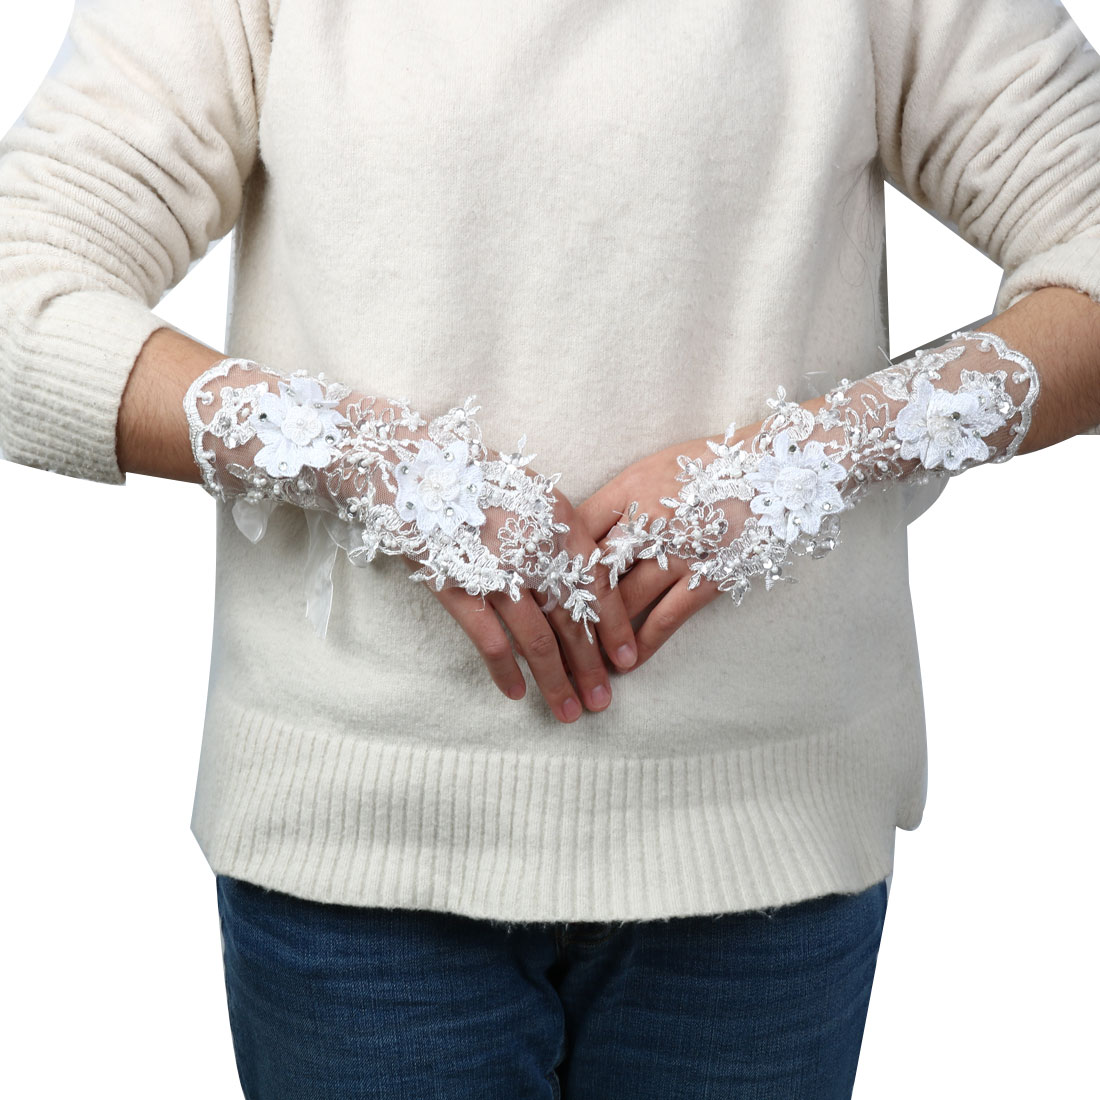 Wedding Faux Diamond Decor Flower Style Bridesmaid Lace Fingerless Glove Pair